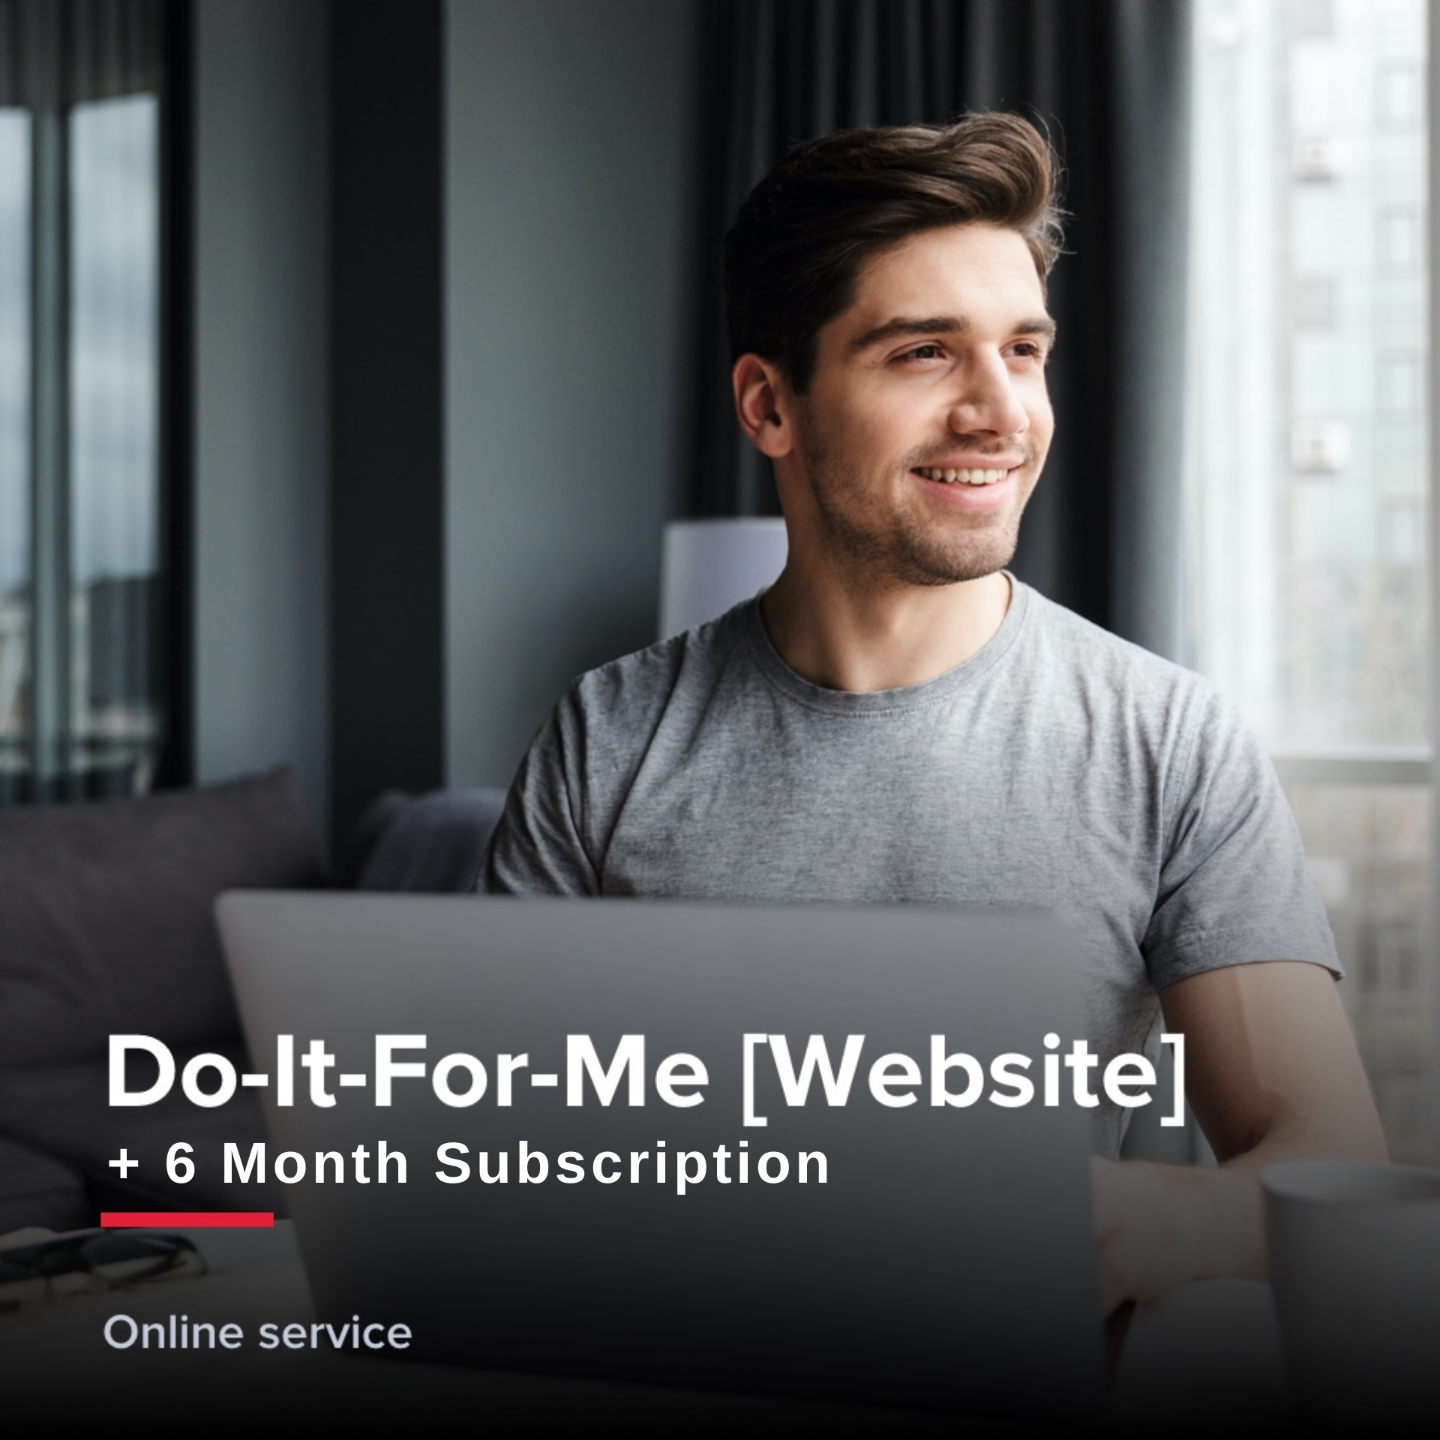 Do-It-For-Me Website +6 month subscription